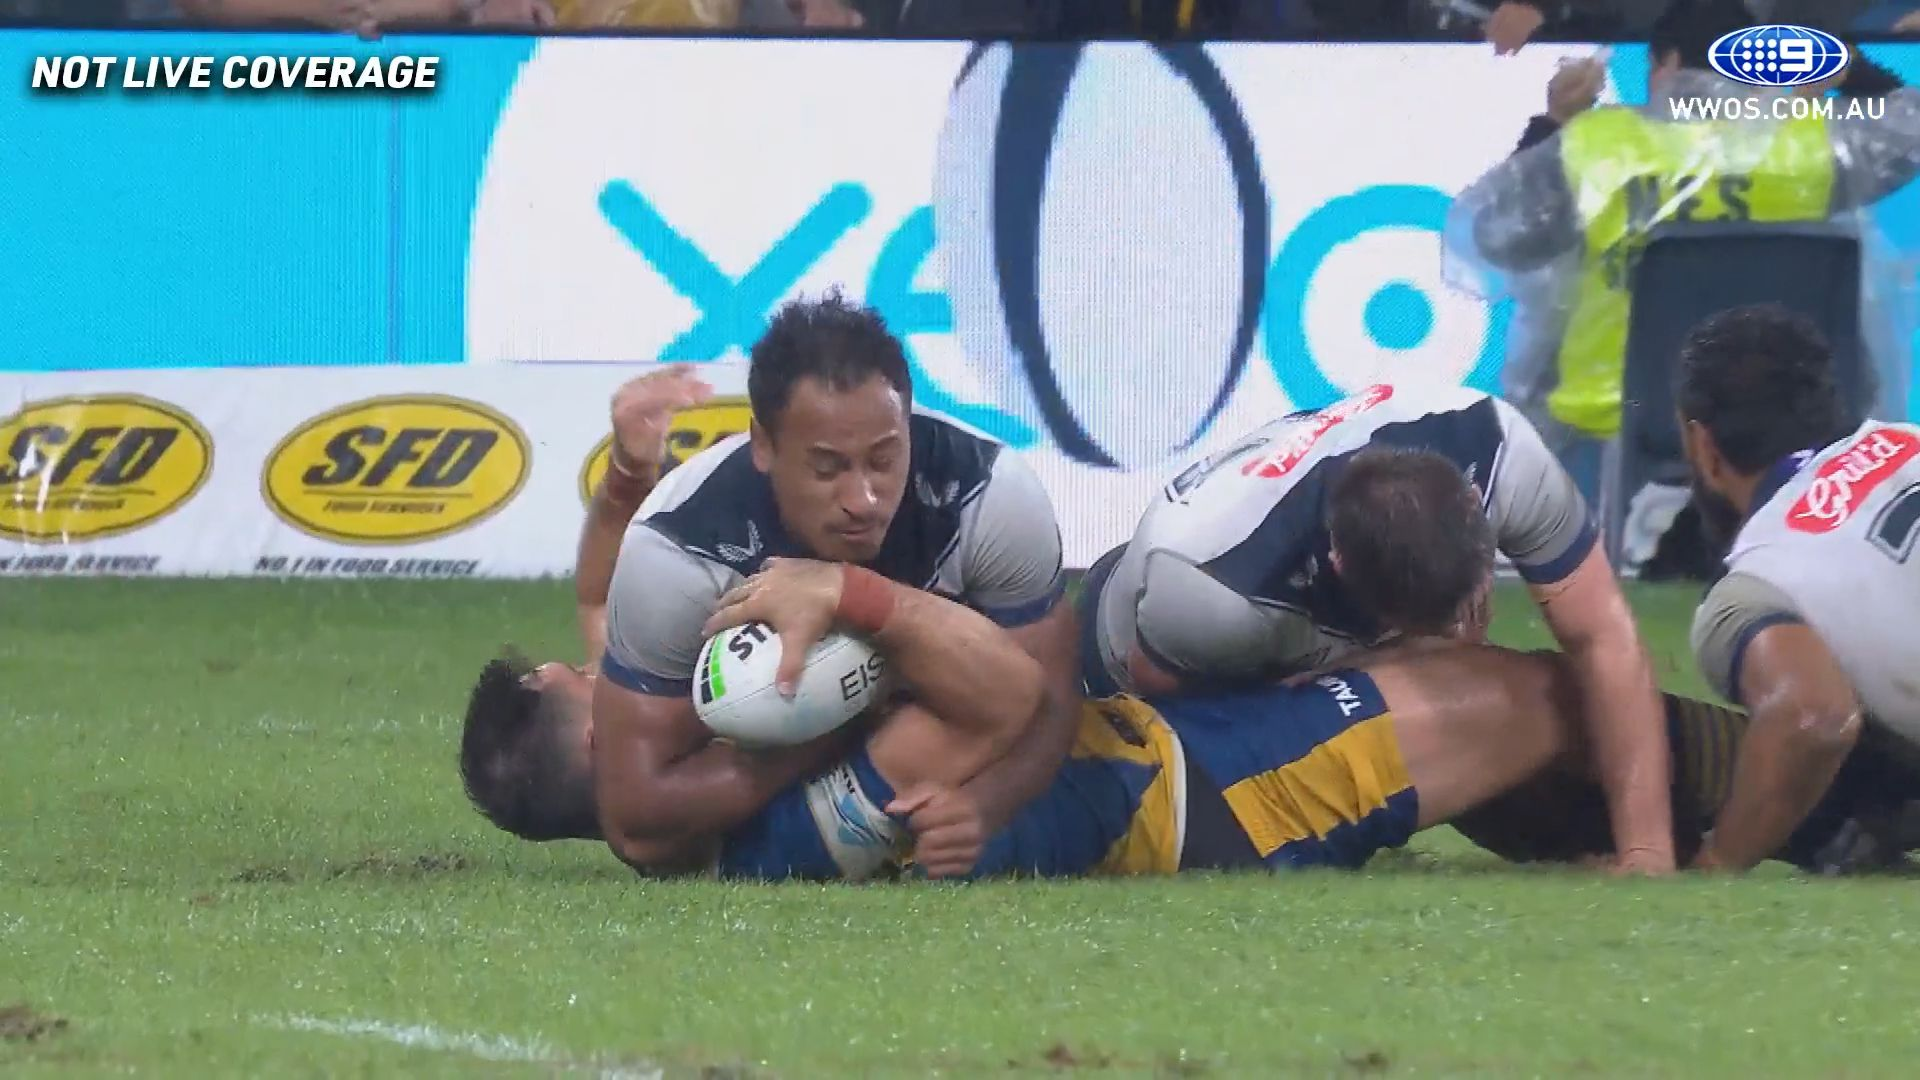 Felise Kaufusi cops charge, faces two week ban for tackle on Ryan Kaufusi